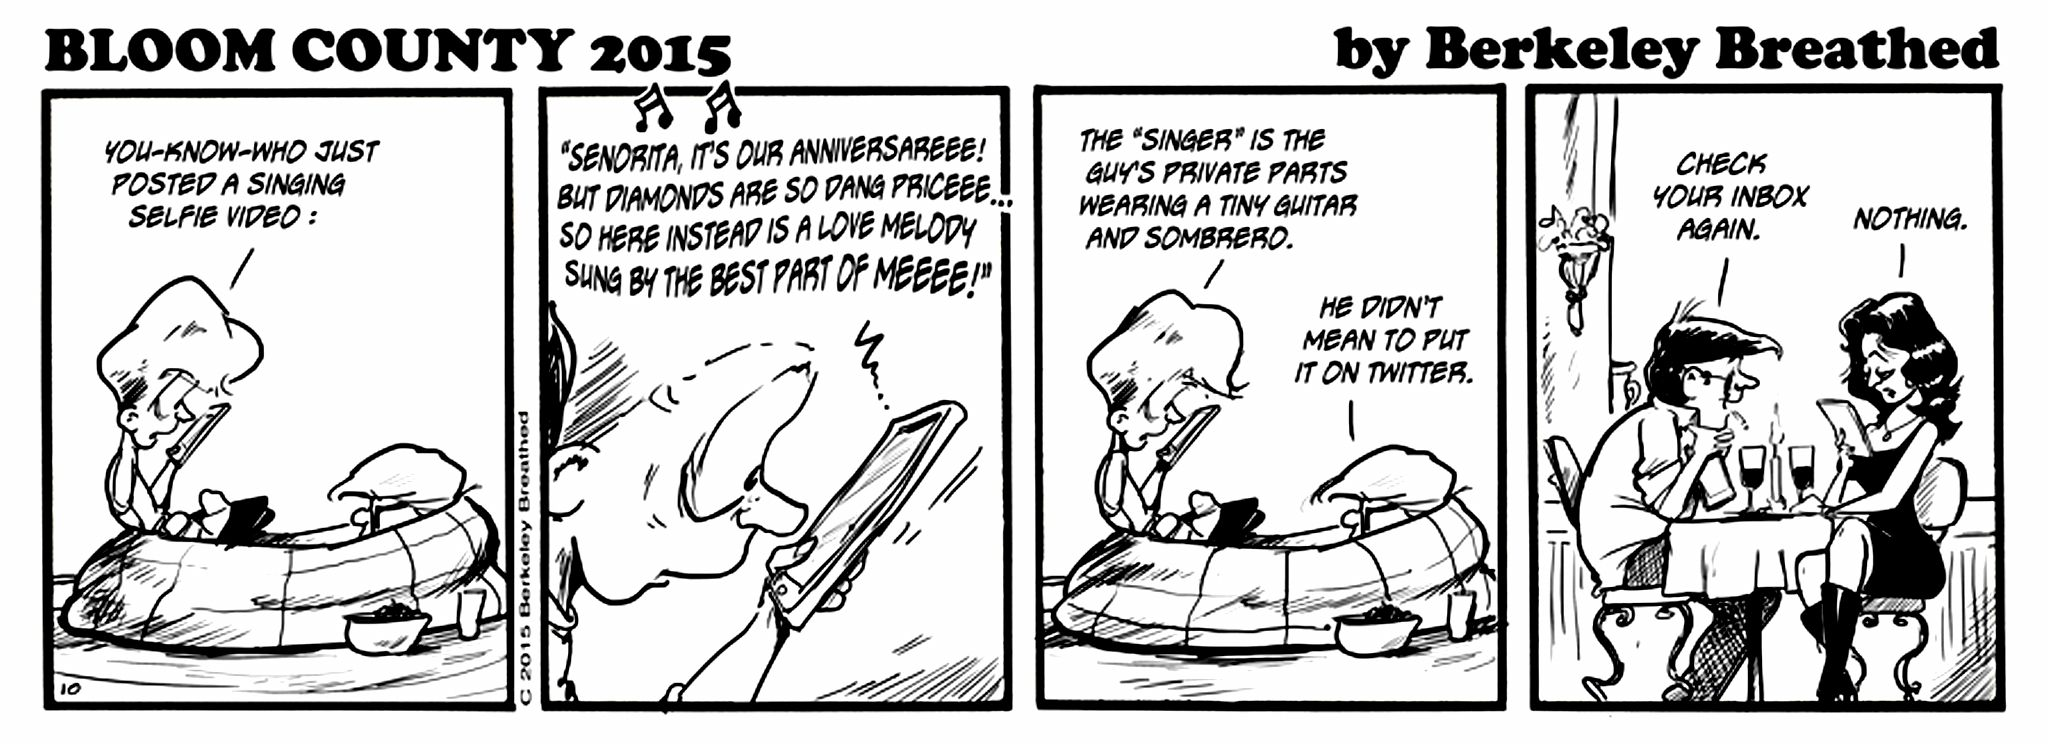 Bloom County 2015 - 07-27 - Monday